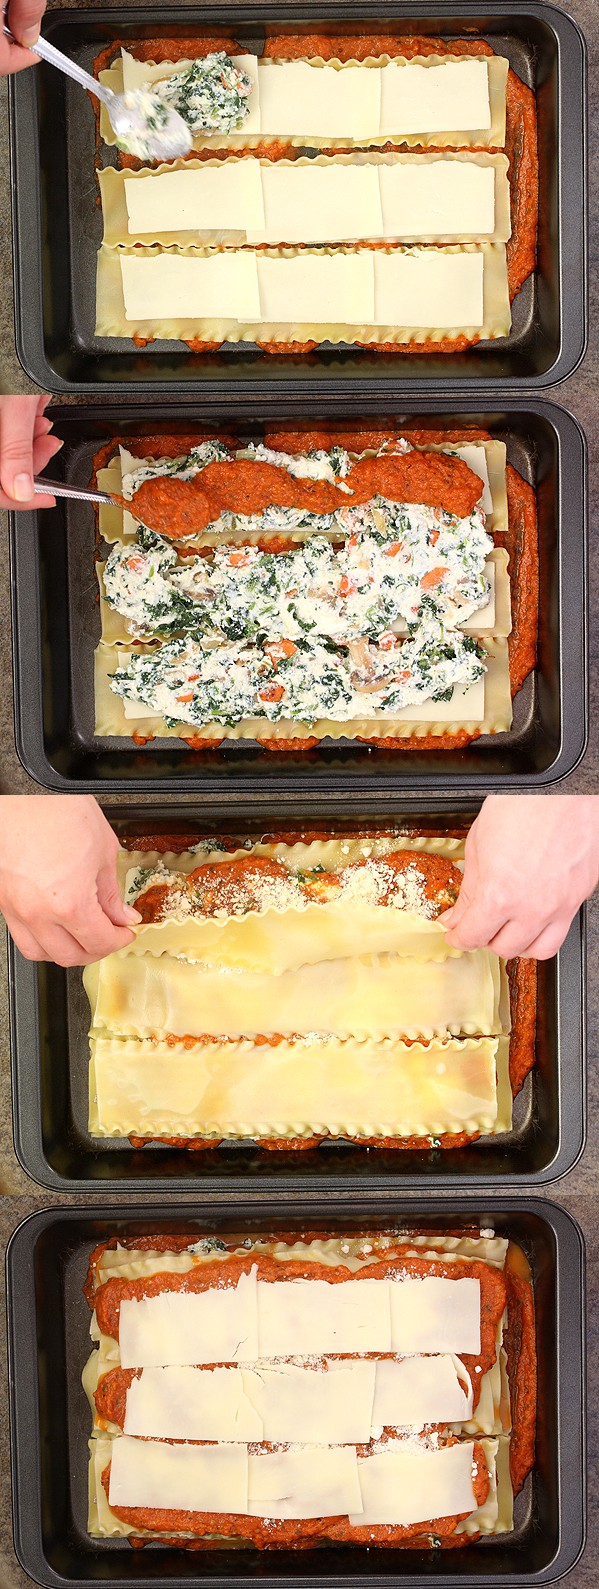 Prepping Spinach, Carrot, and Mushroom Lasagna